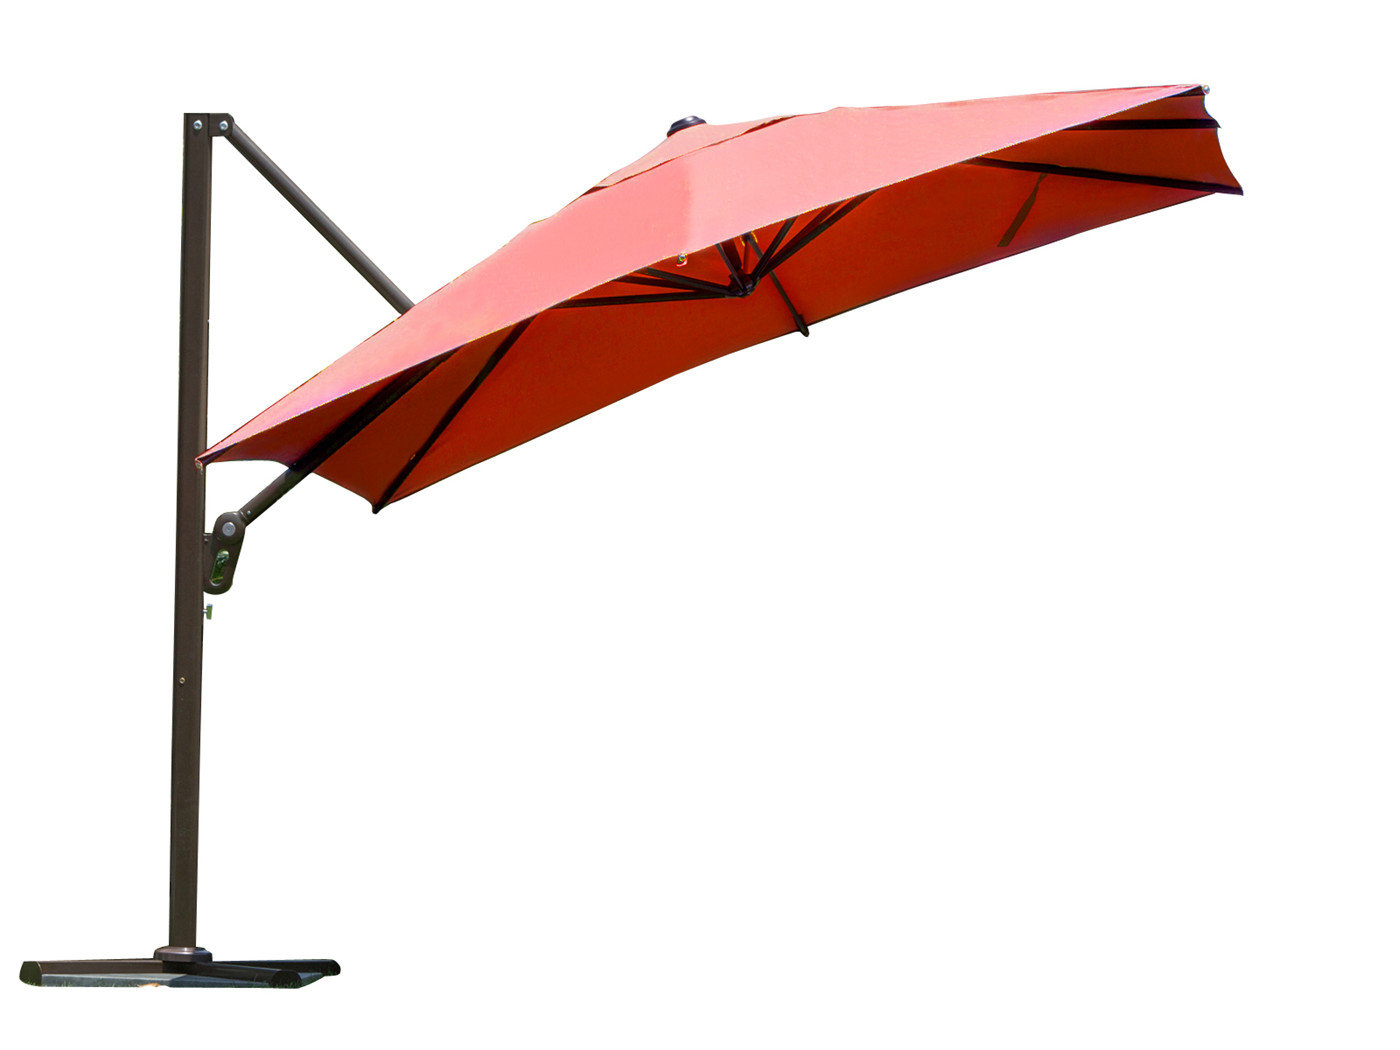 9' Square Cantilever Umbrella Intended For Latest Cora Square Cantilever Umbrellas (View 17 of 20)